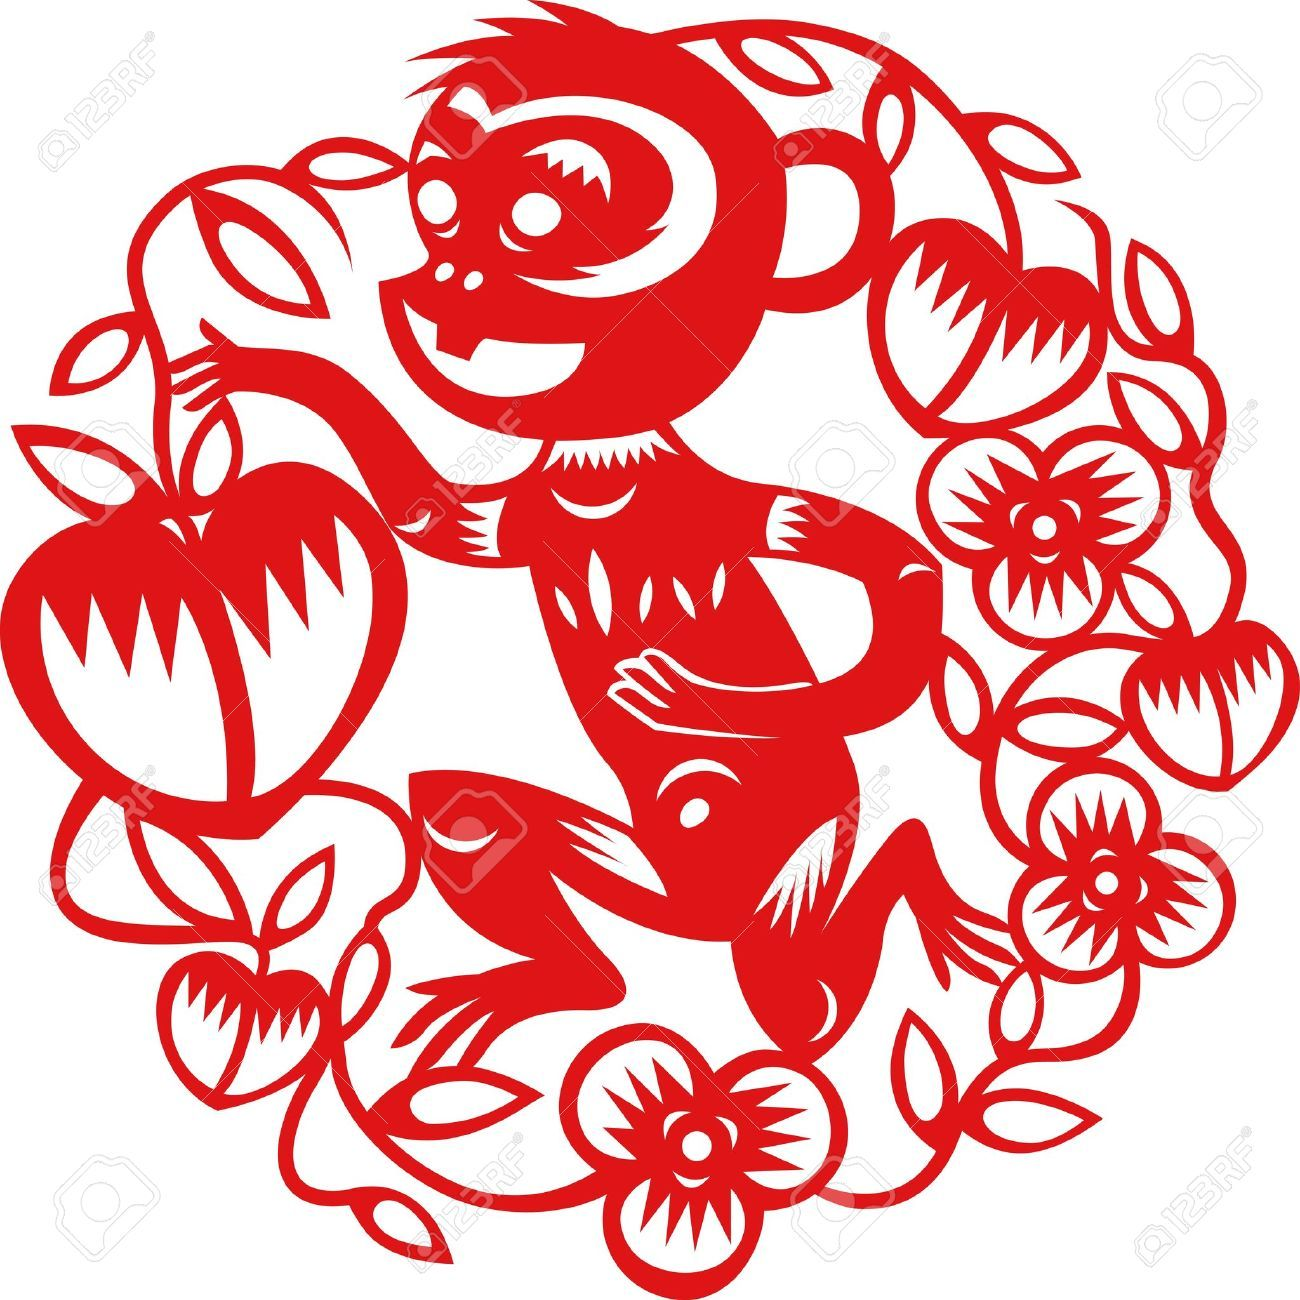 Related image rd grade. Monkeys clipart chinese new year